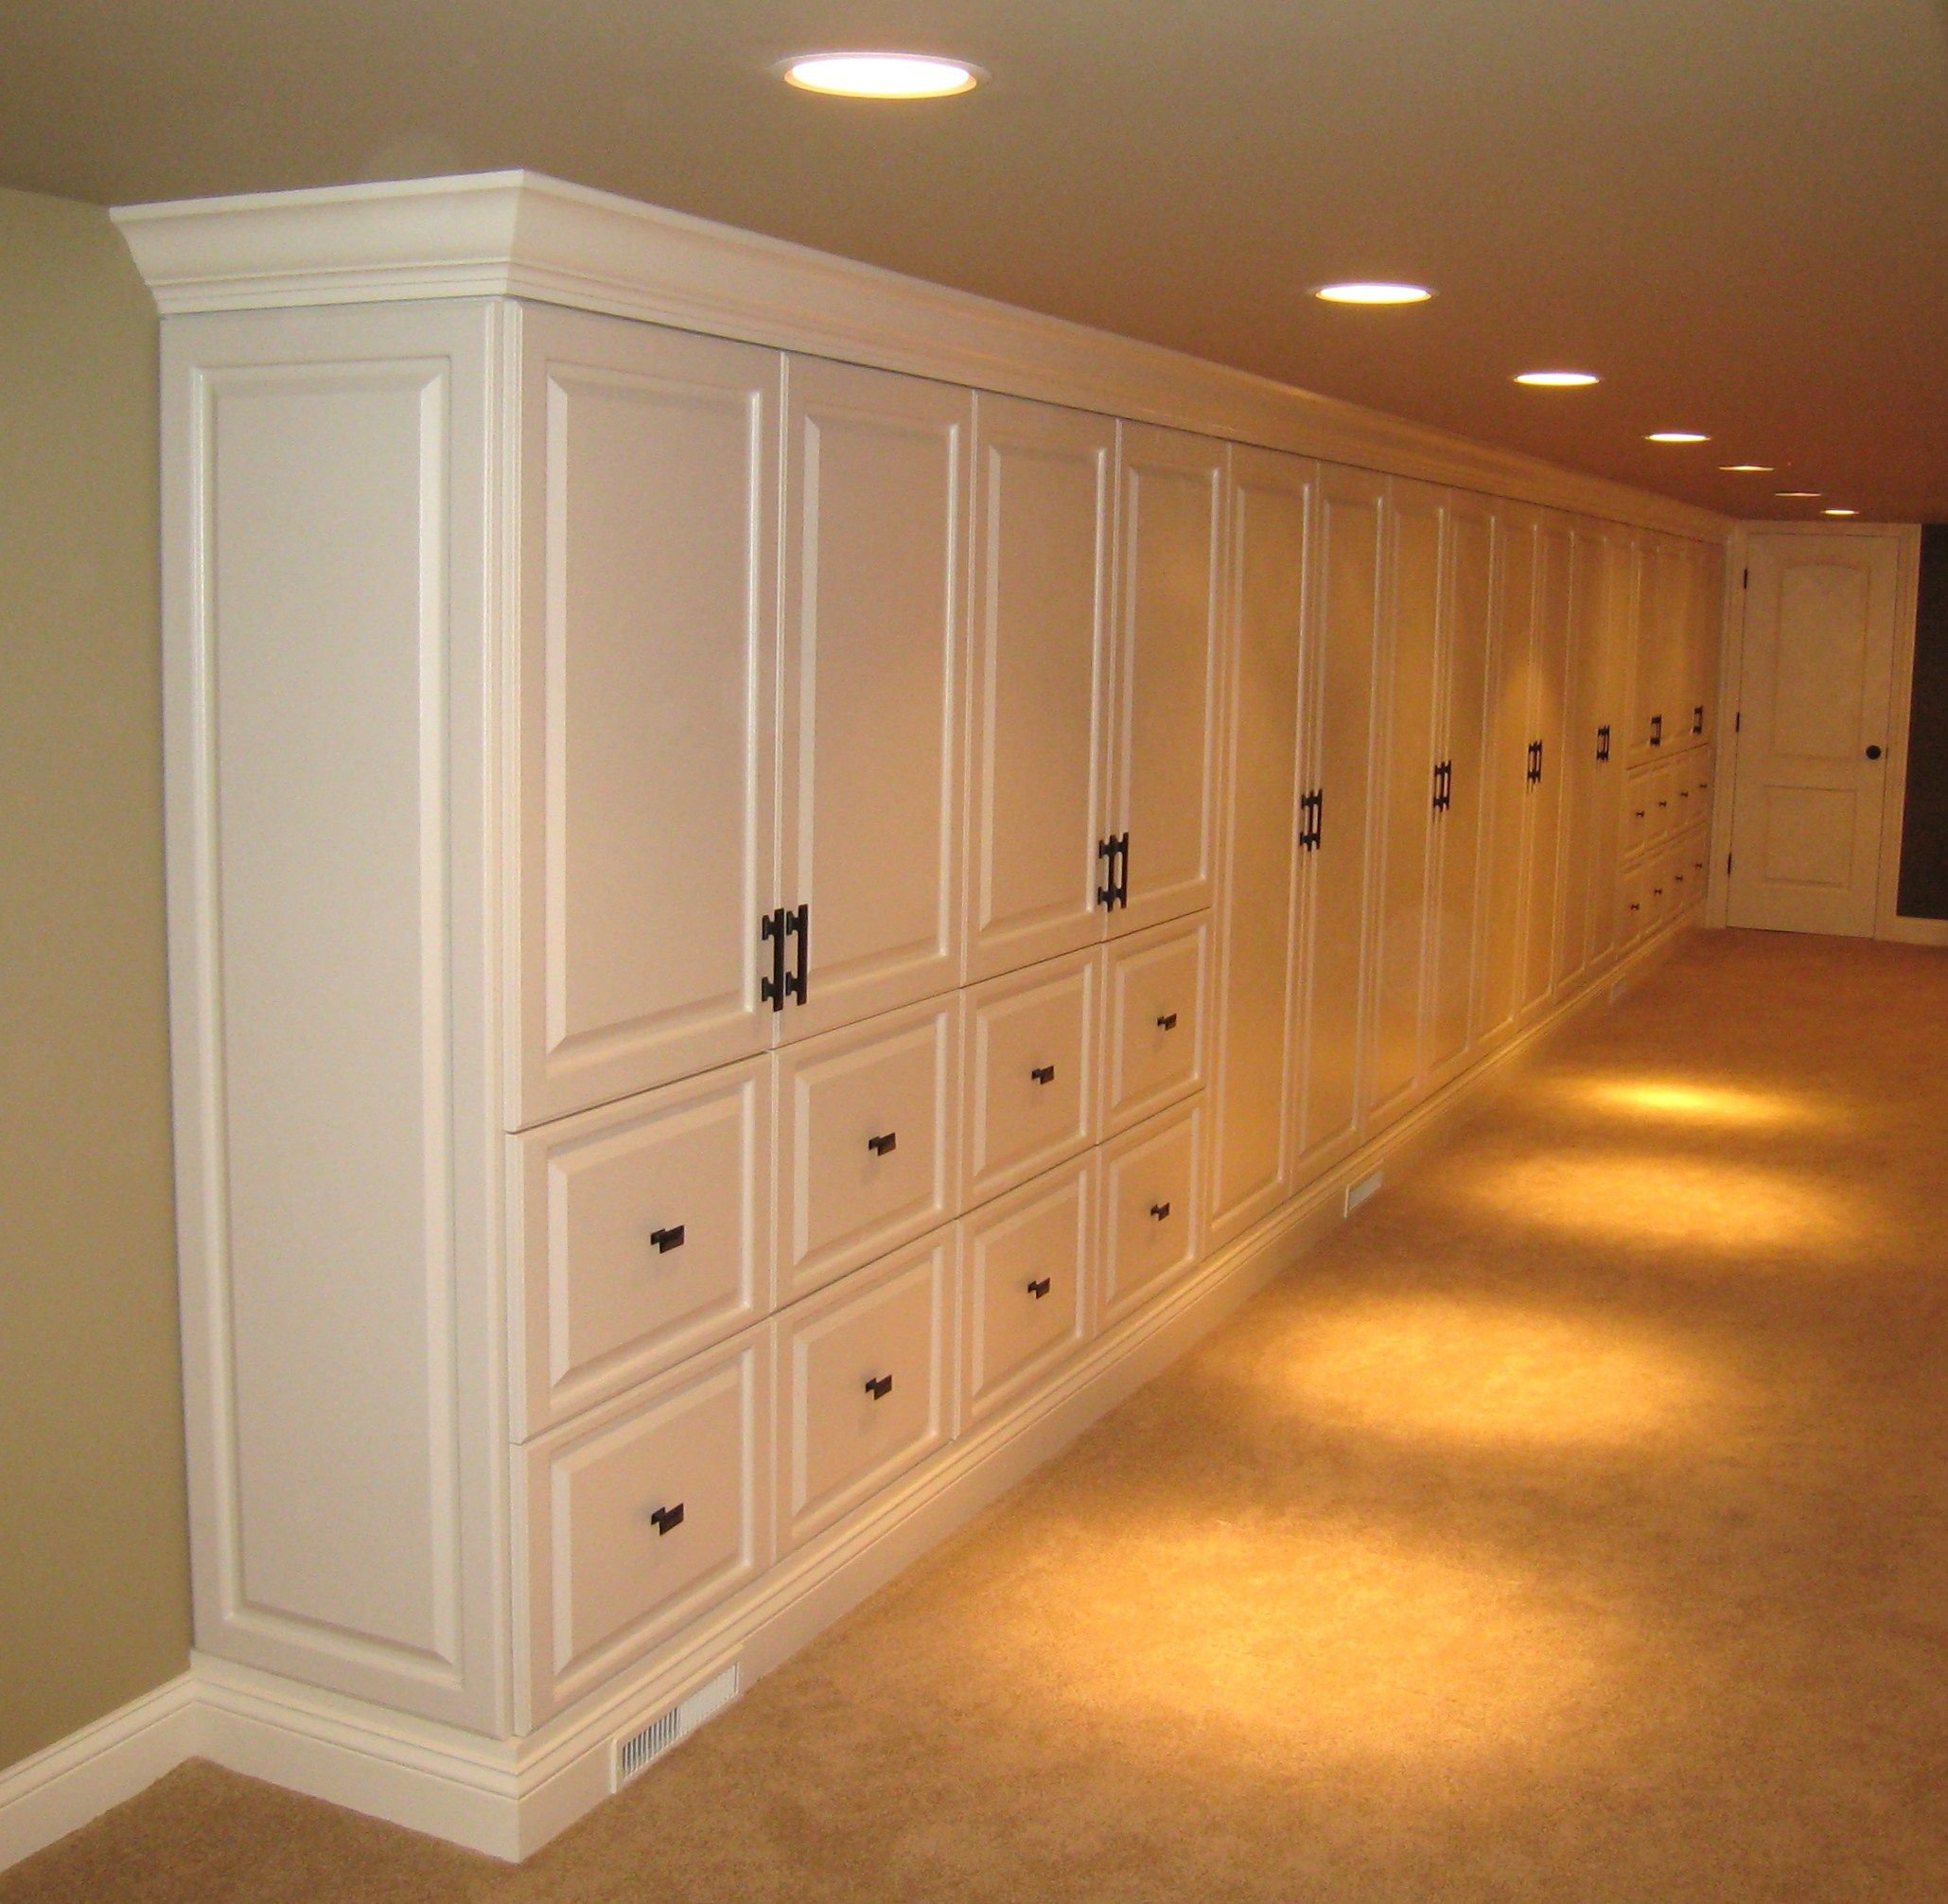 Formal Storage Cabinets In Basement Family Room